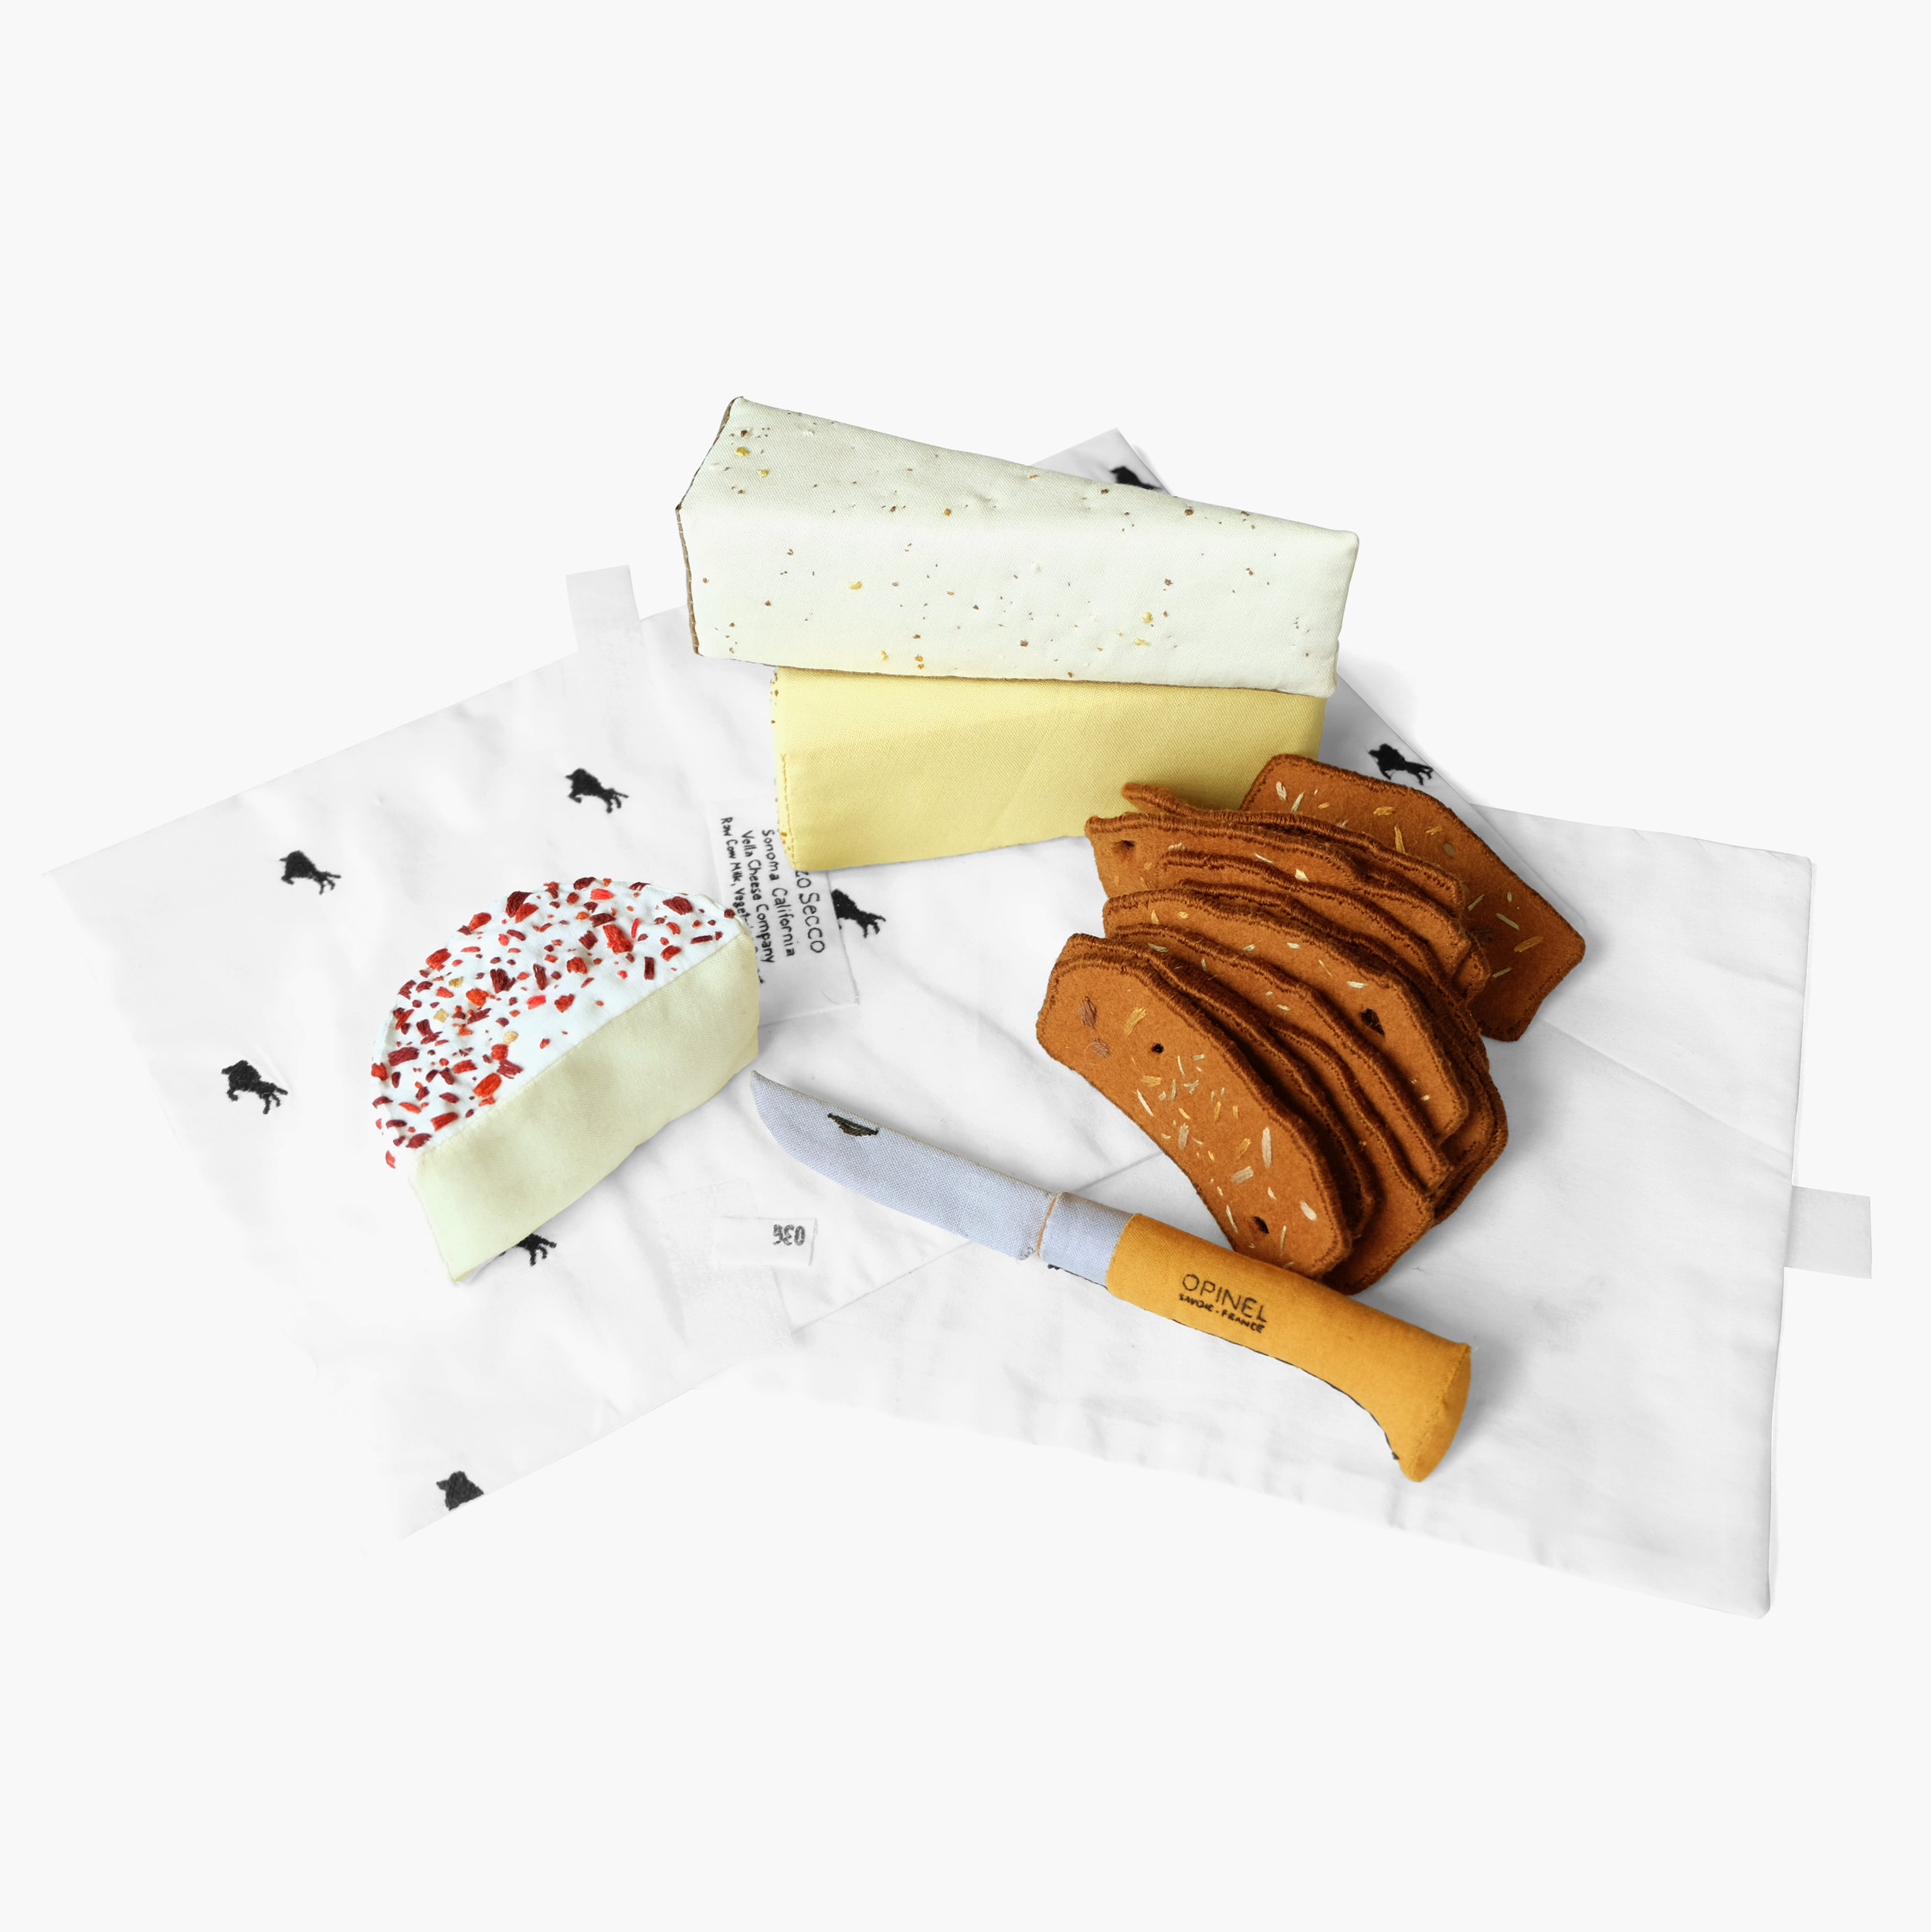 Triple Cream Dream    Cheeses, crostini, and Opinel knife from Cowgirl Creamery   Foam, fiberfill, felt, cotton cloth, embroidery floss Approximately 4.5 x 15 x 11 in 2015